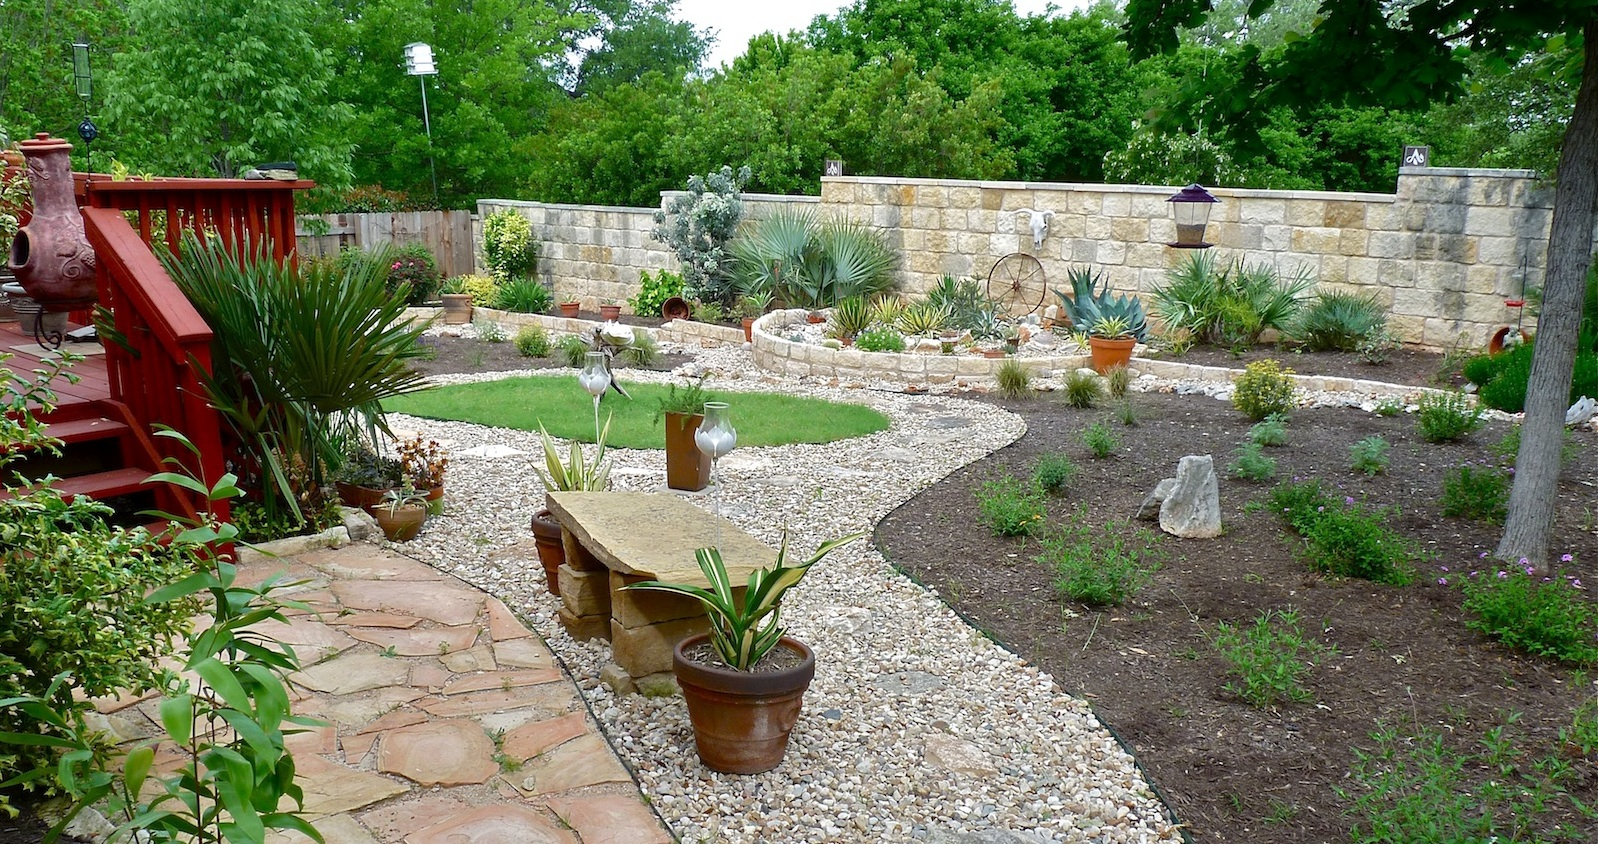 Texas Backyard Landscaping Ideas Home Interior Design 2016 pertaining to 11 Clever Initiatives of How to Makeover Backyard Ideas Texas